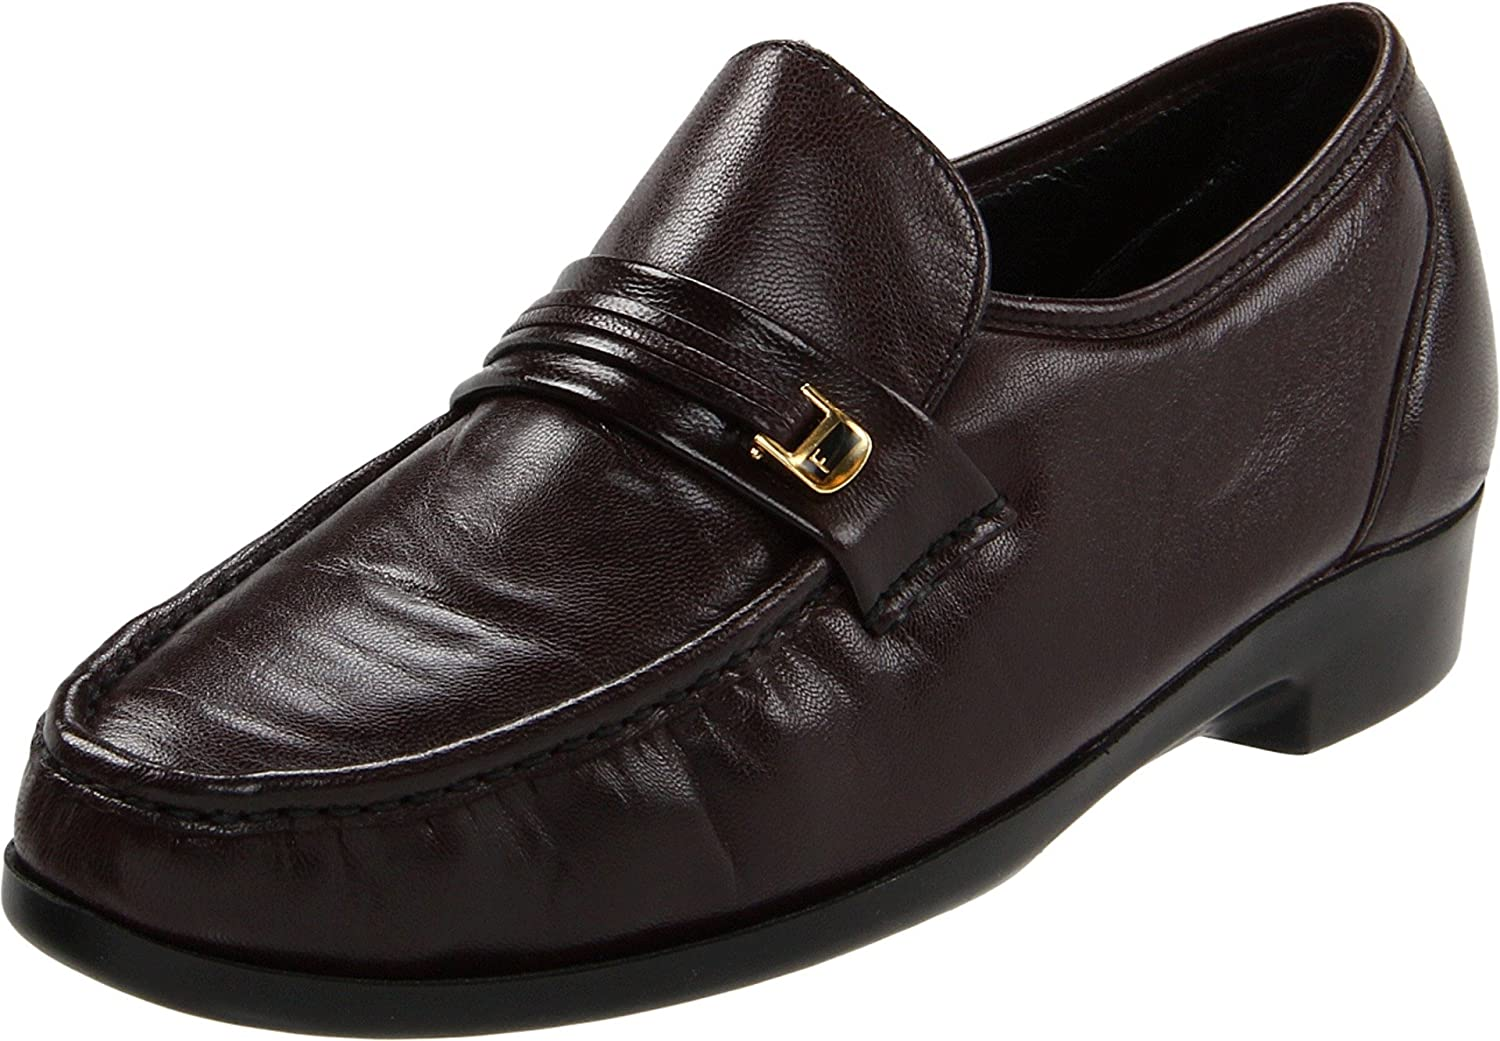 Florsheim Max 70% OFF Men's Riva Loafers Beauty products